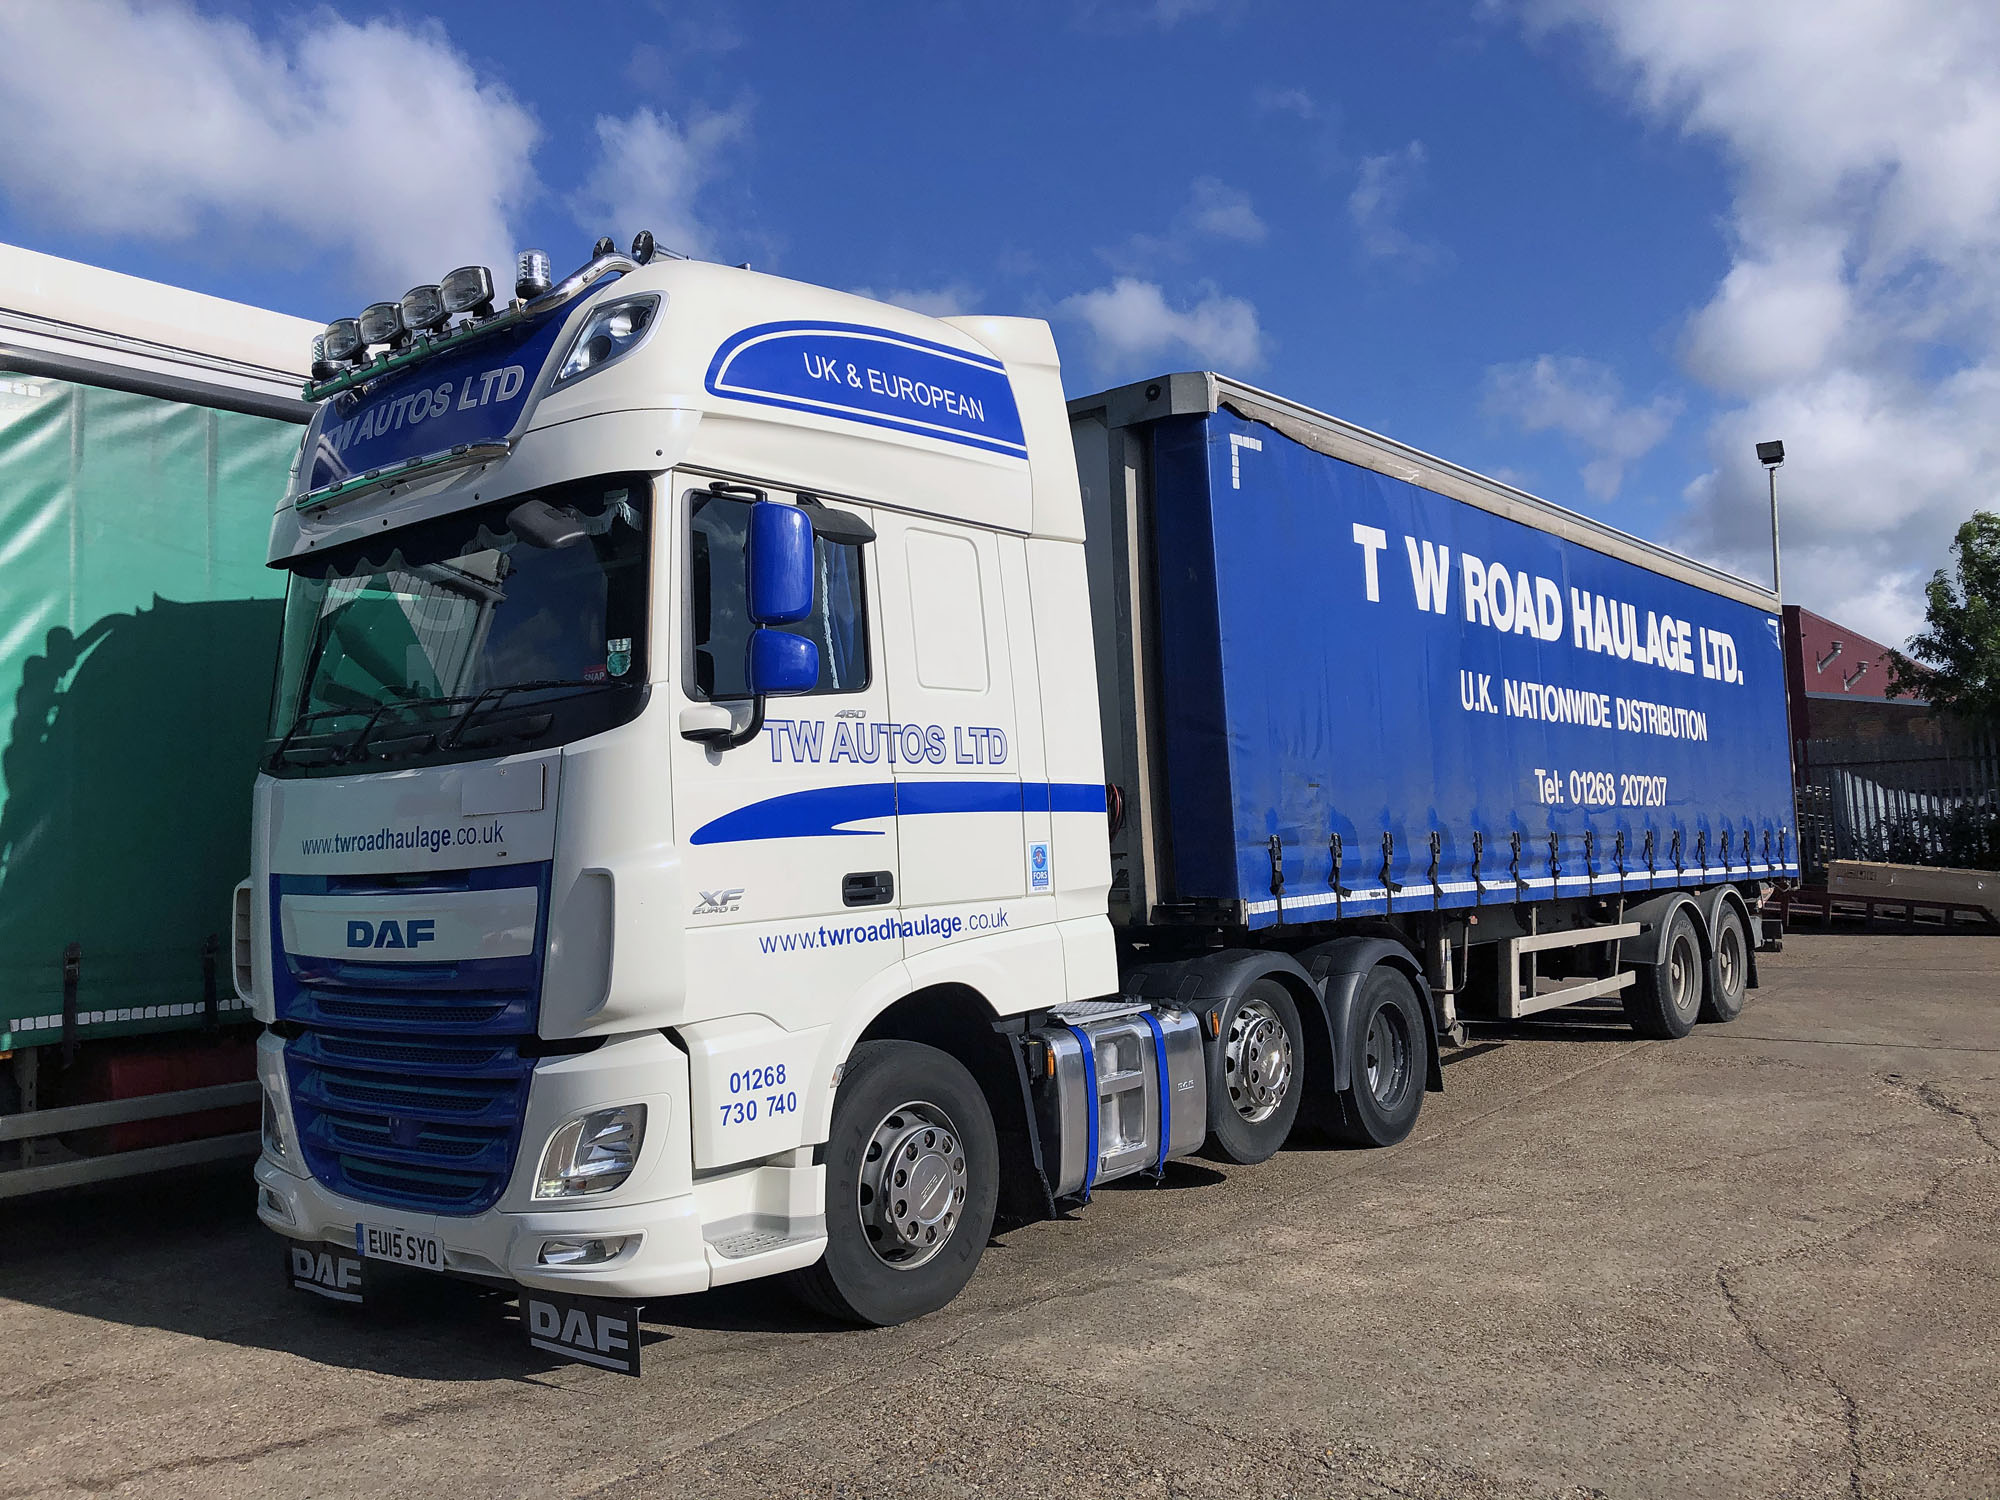 TW Road Haulage Ltd